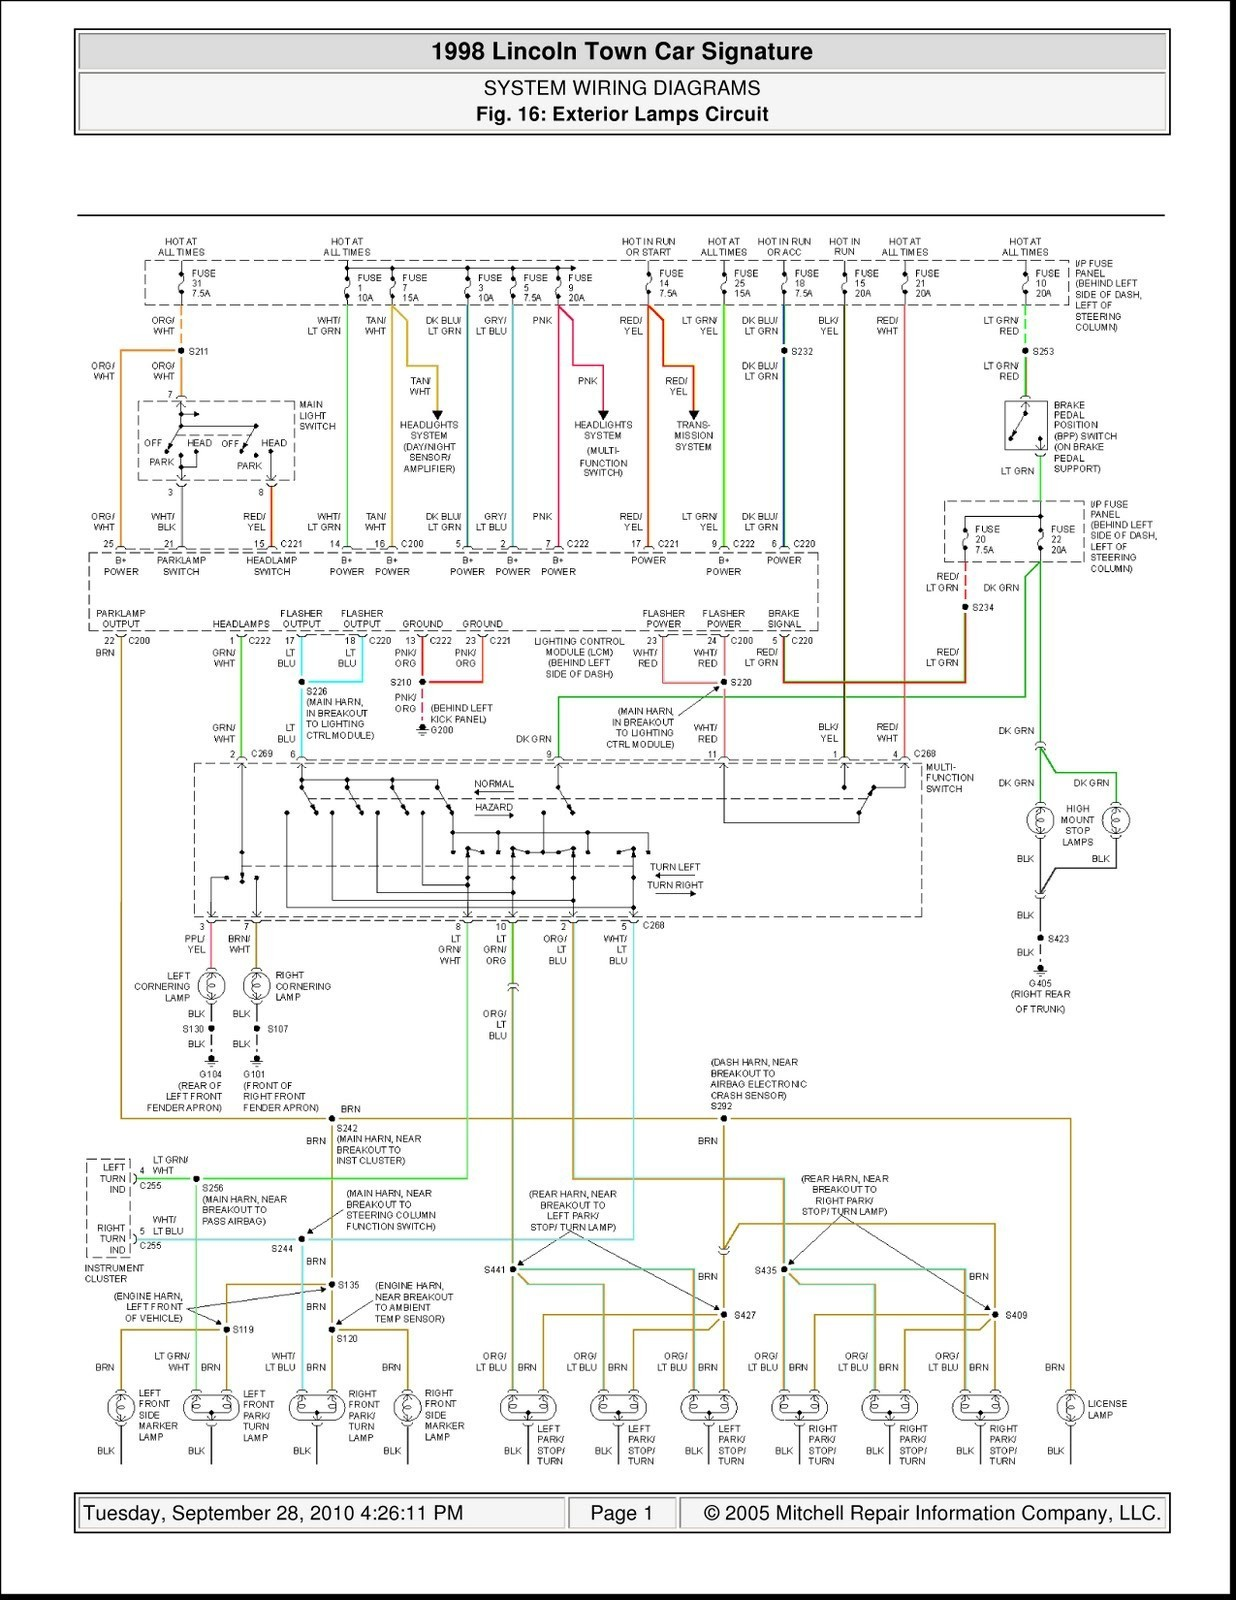 2000 Lincoln Ls V8 Engine Diagram Lincoln Continental Engine Diagram Worksheet and Wiring Diagram • Of 2000 Lincoln Ls V8 Engine Diagram Lincoln Continental Engine Diagram Worksheet and Wiring Diagram •